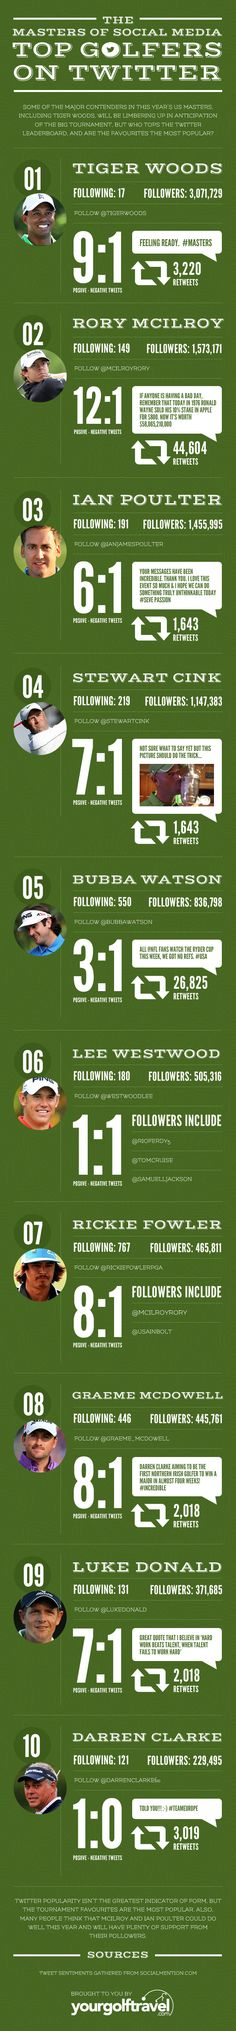 The Masters of Social Media - Top Golfers on Twitter #infographic #twitter